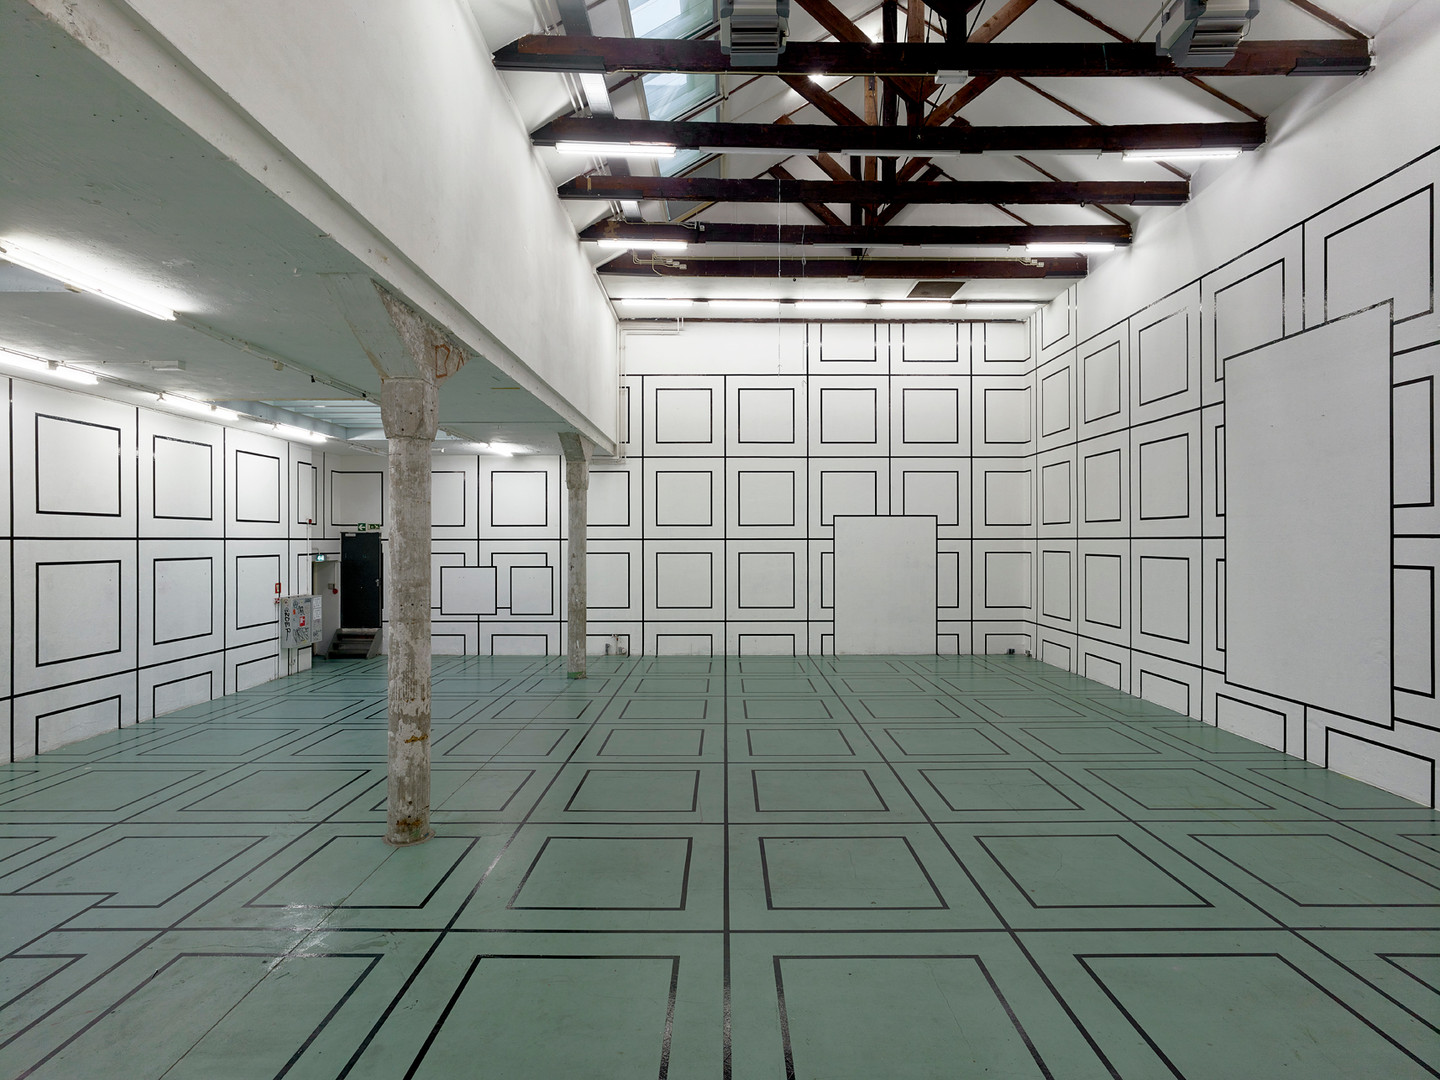 W139 Large grid mural on walls and floor Aam Solleveld